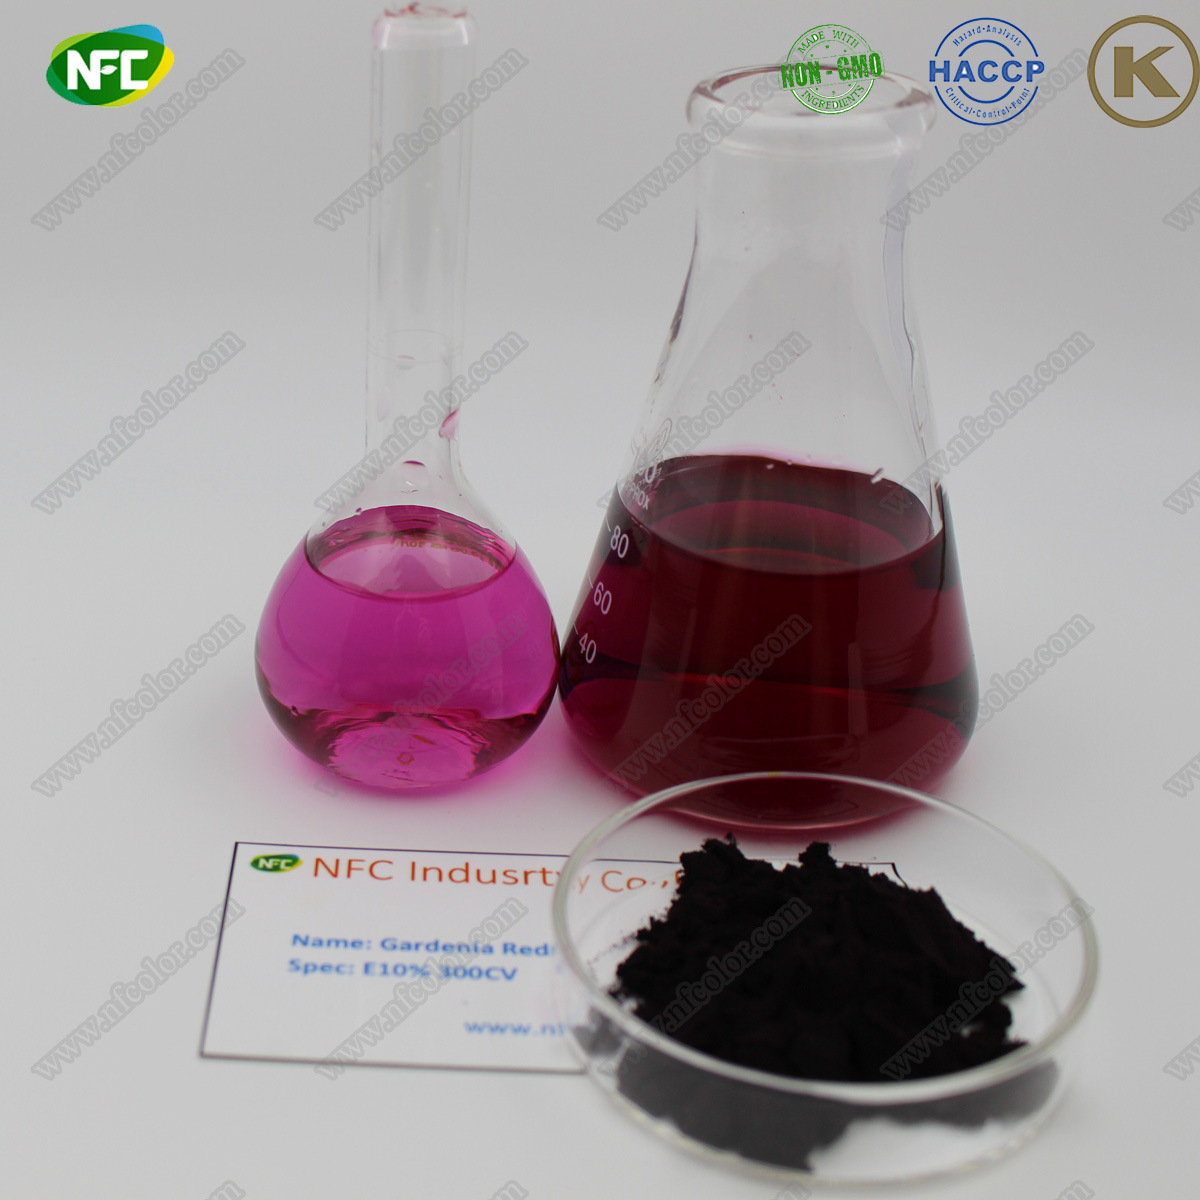 China Best Price Natural Food Coloring Gardenia Red China ...